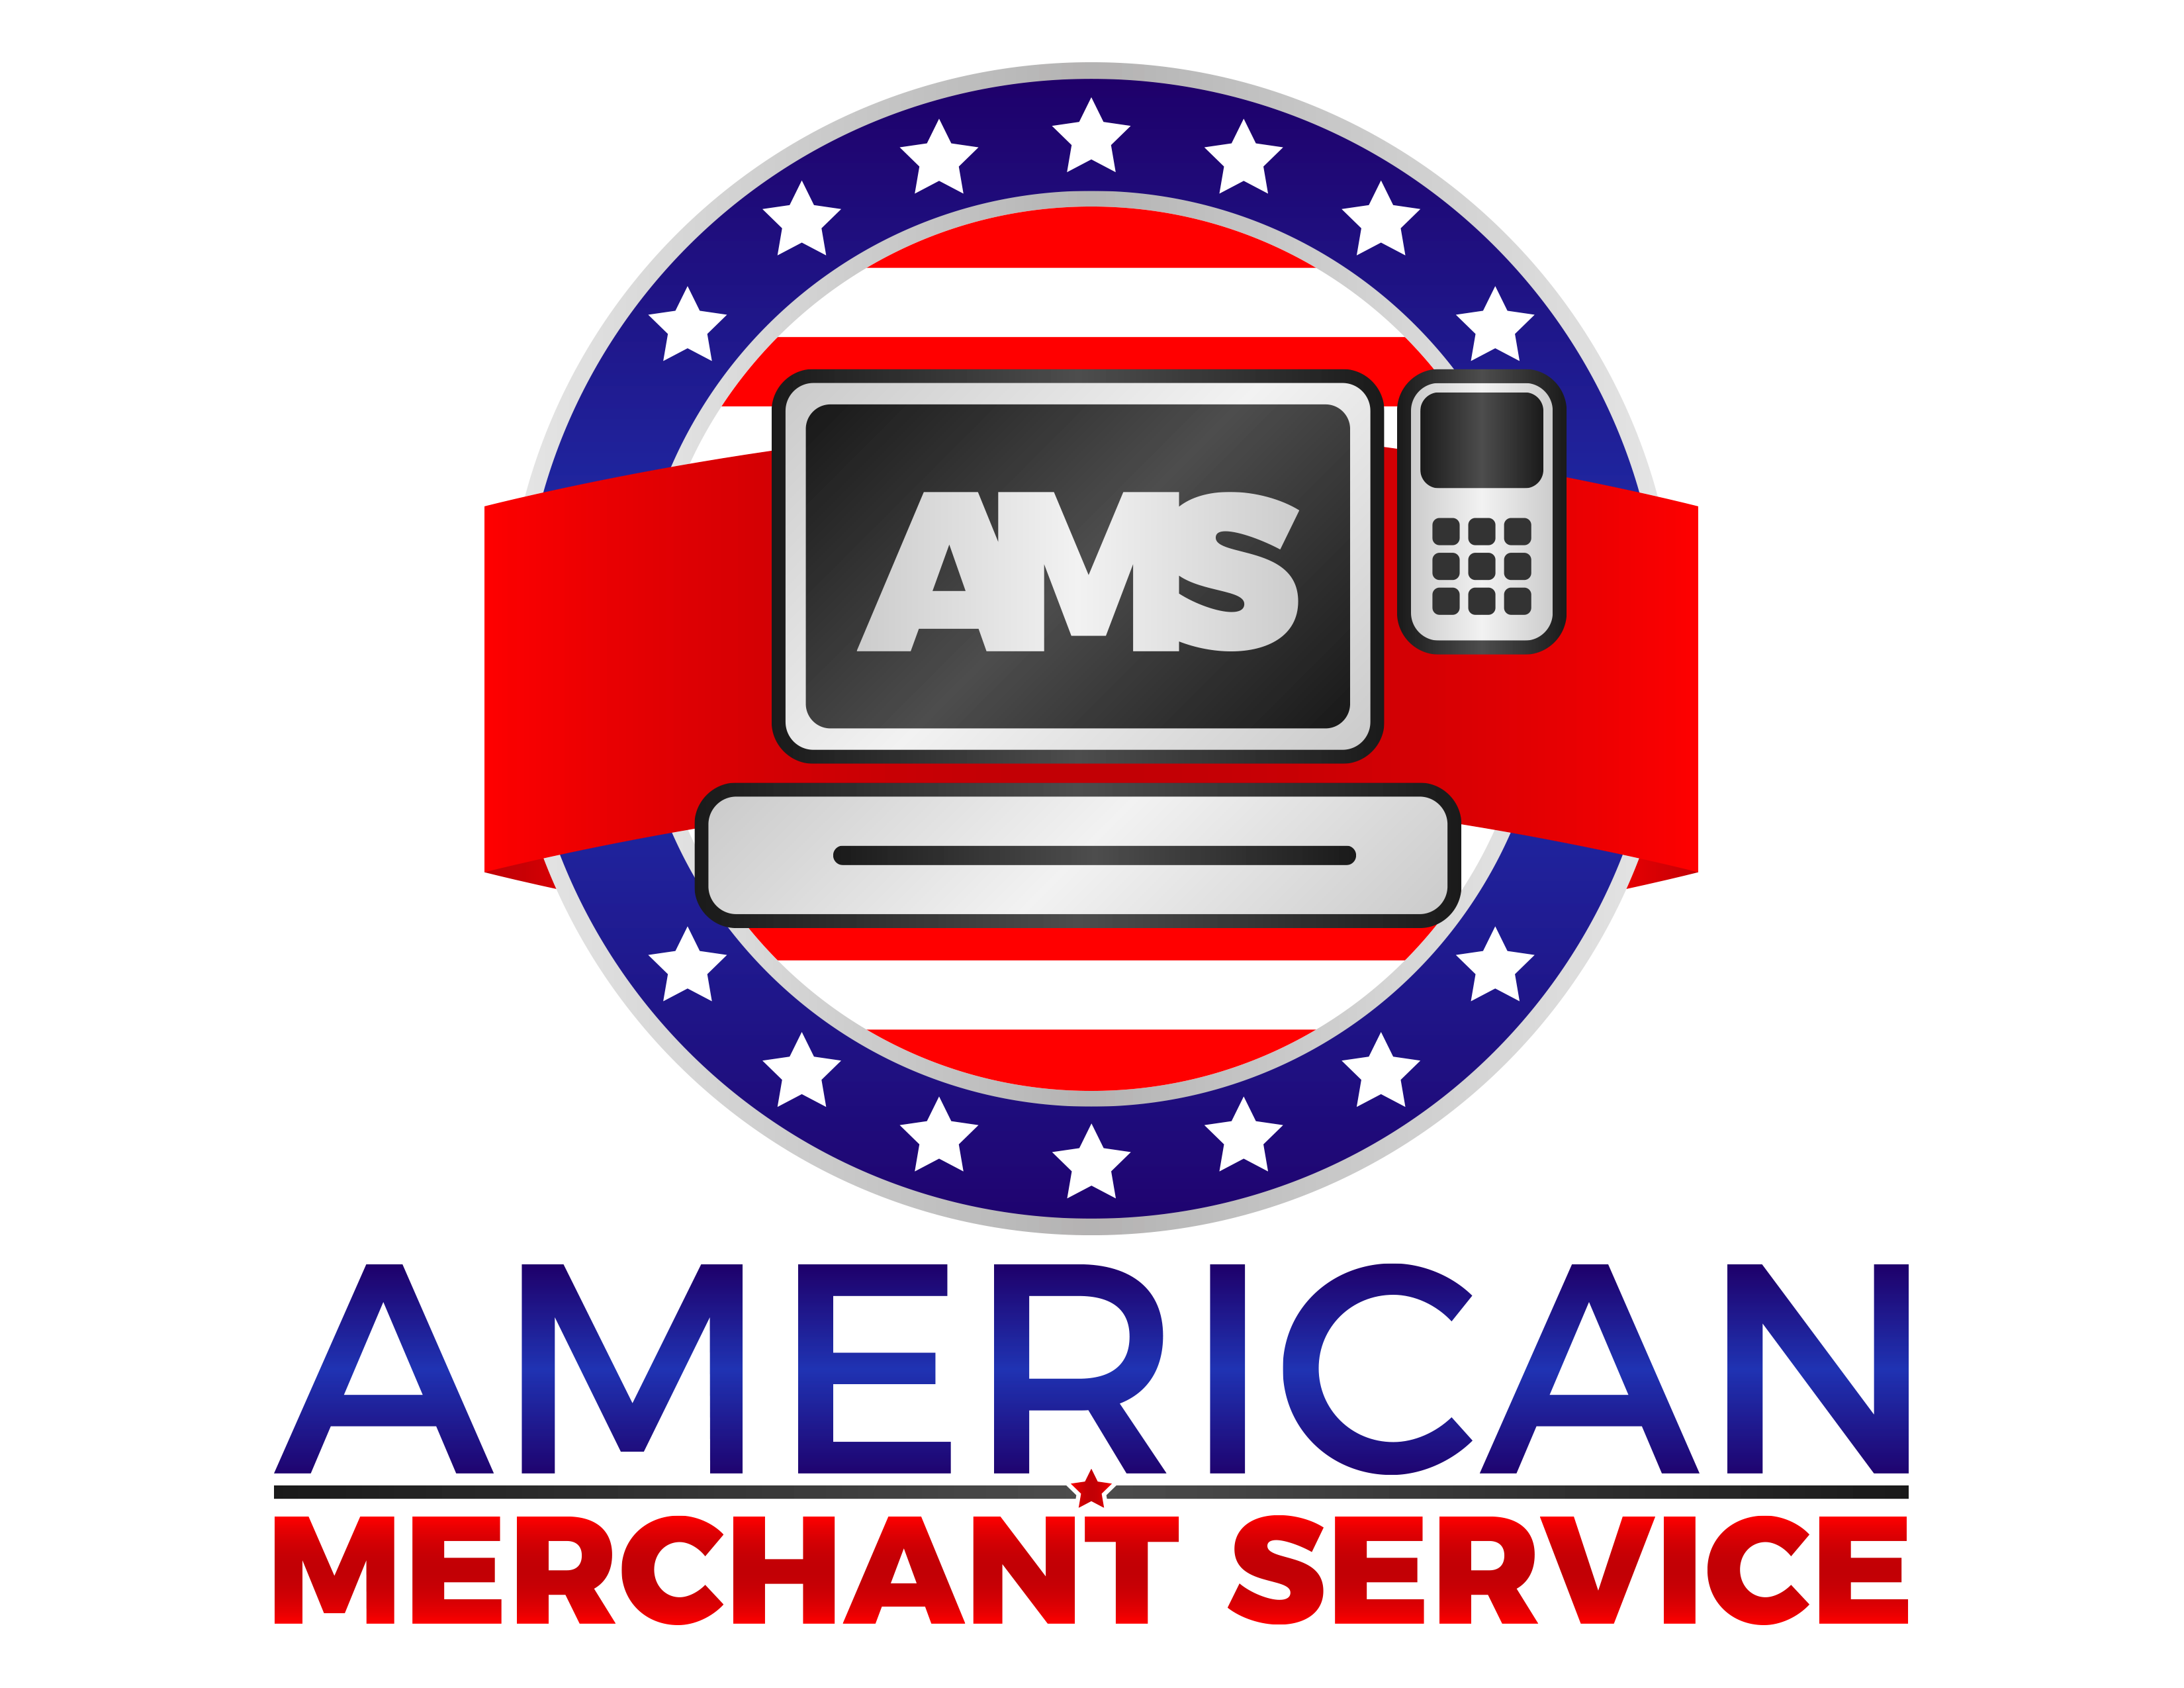 American Merchant Services